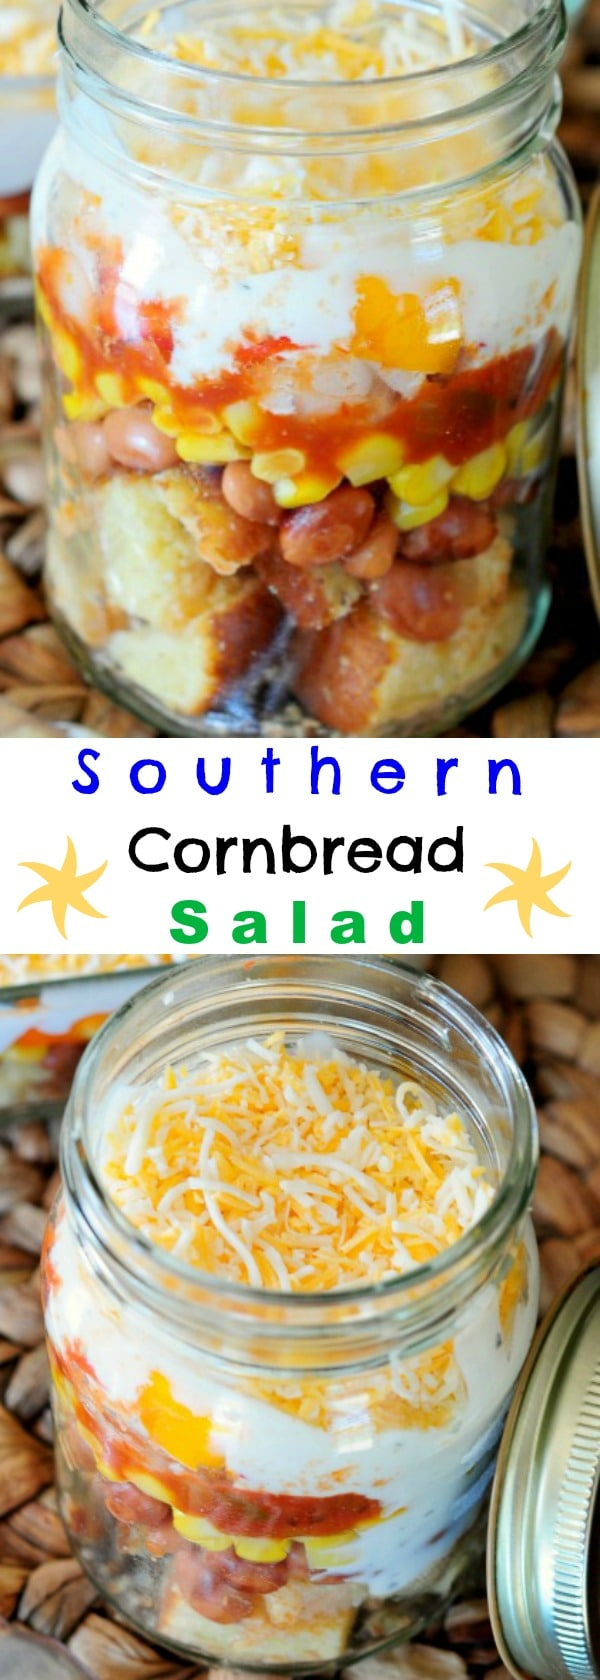 Incredible Southern Cornbread Salad - Everyone will BEG for the recipe!